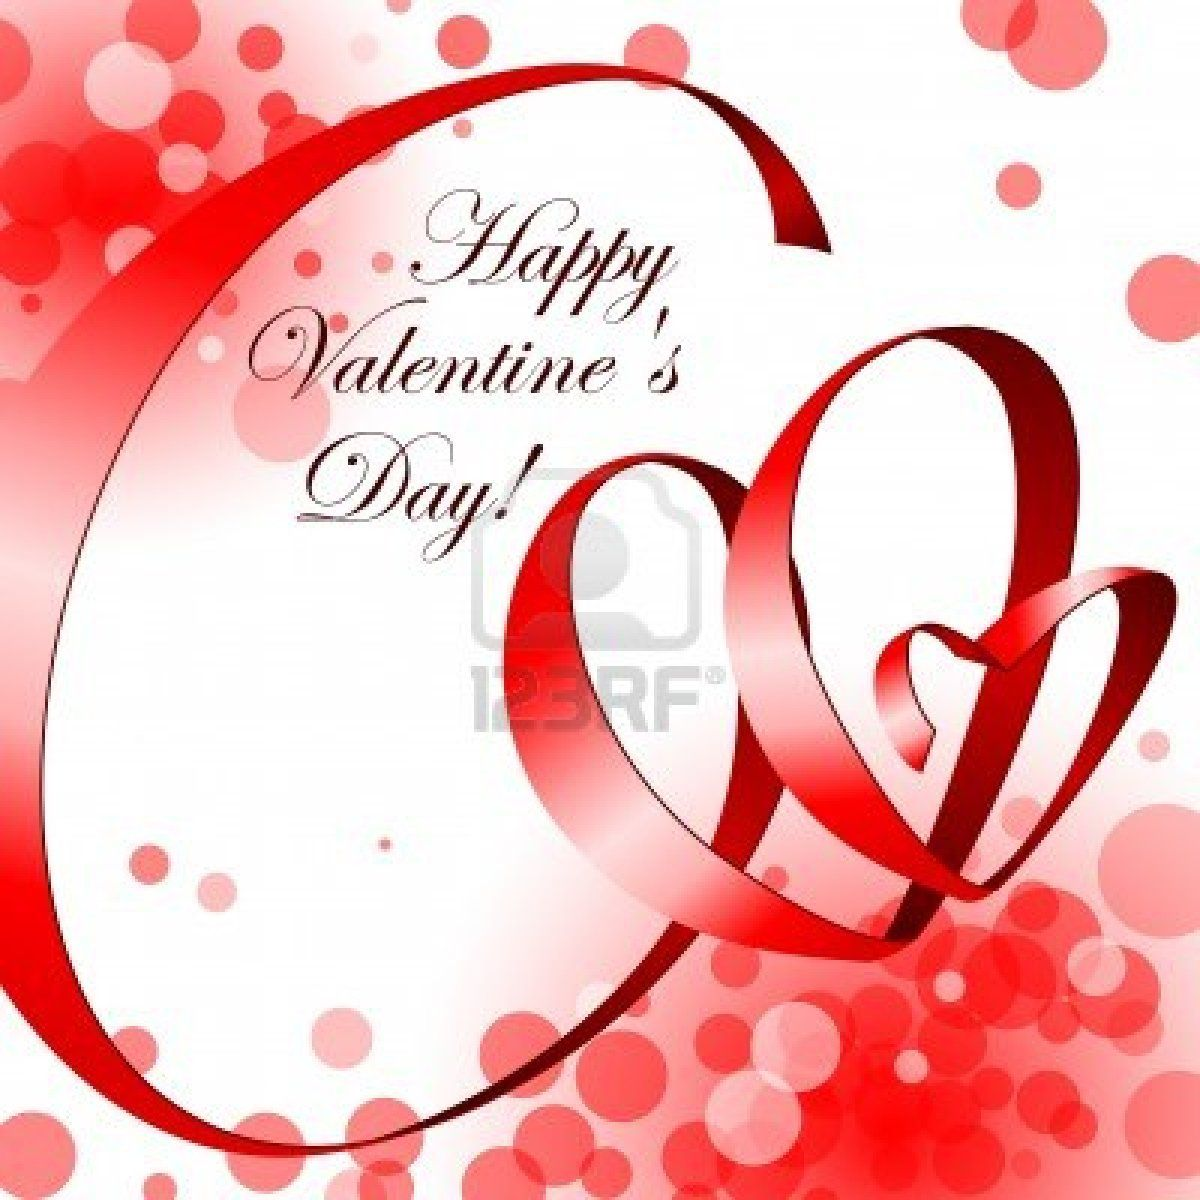 Valentine picture quotes for facebook happy valentines day valentine picture quotes for facebook happy valentines day greetings cards for facebook m4hsunfo Choice Image